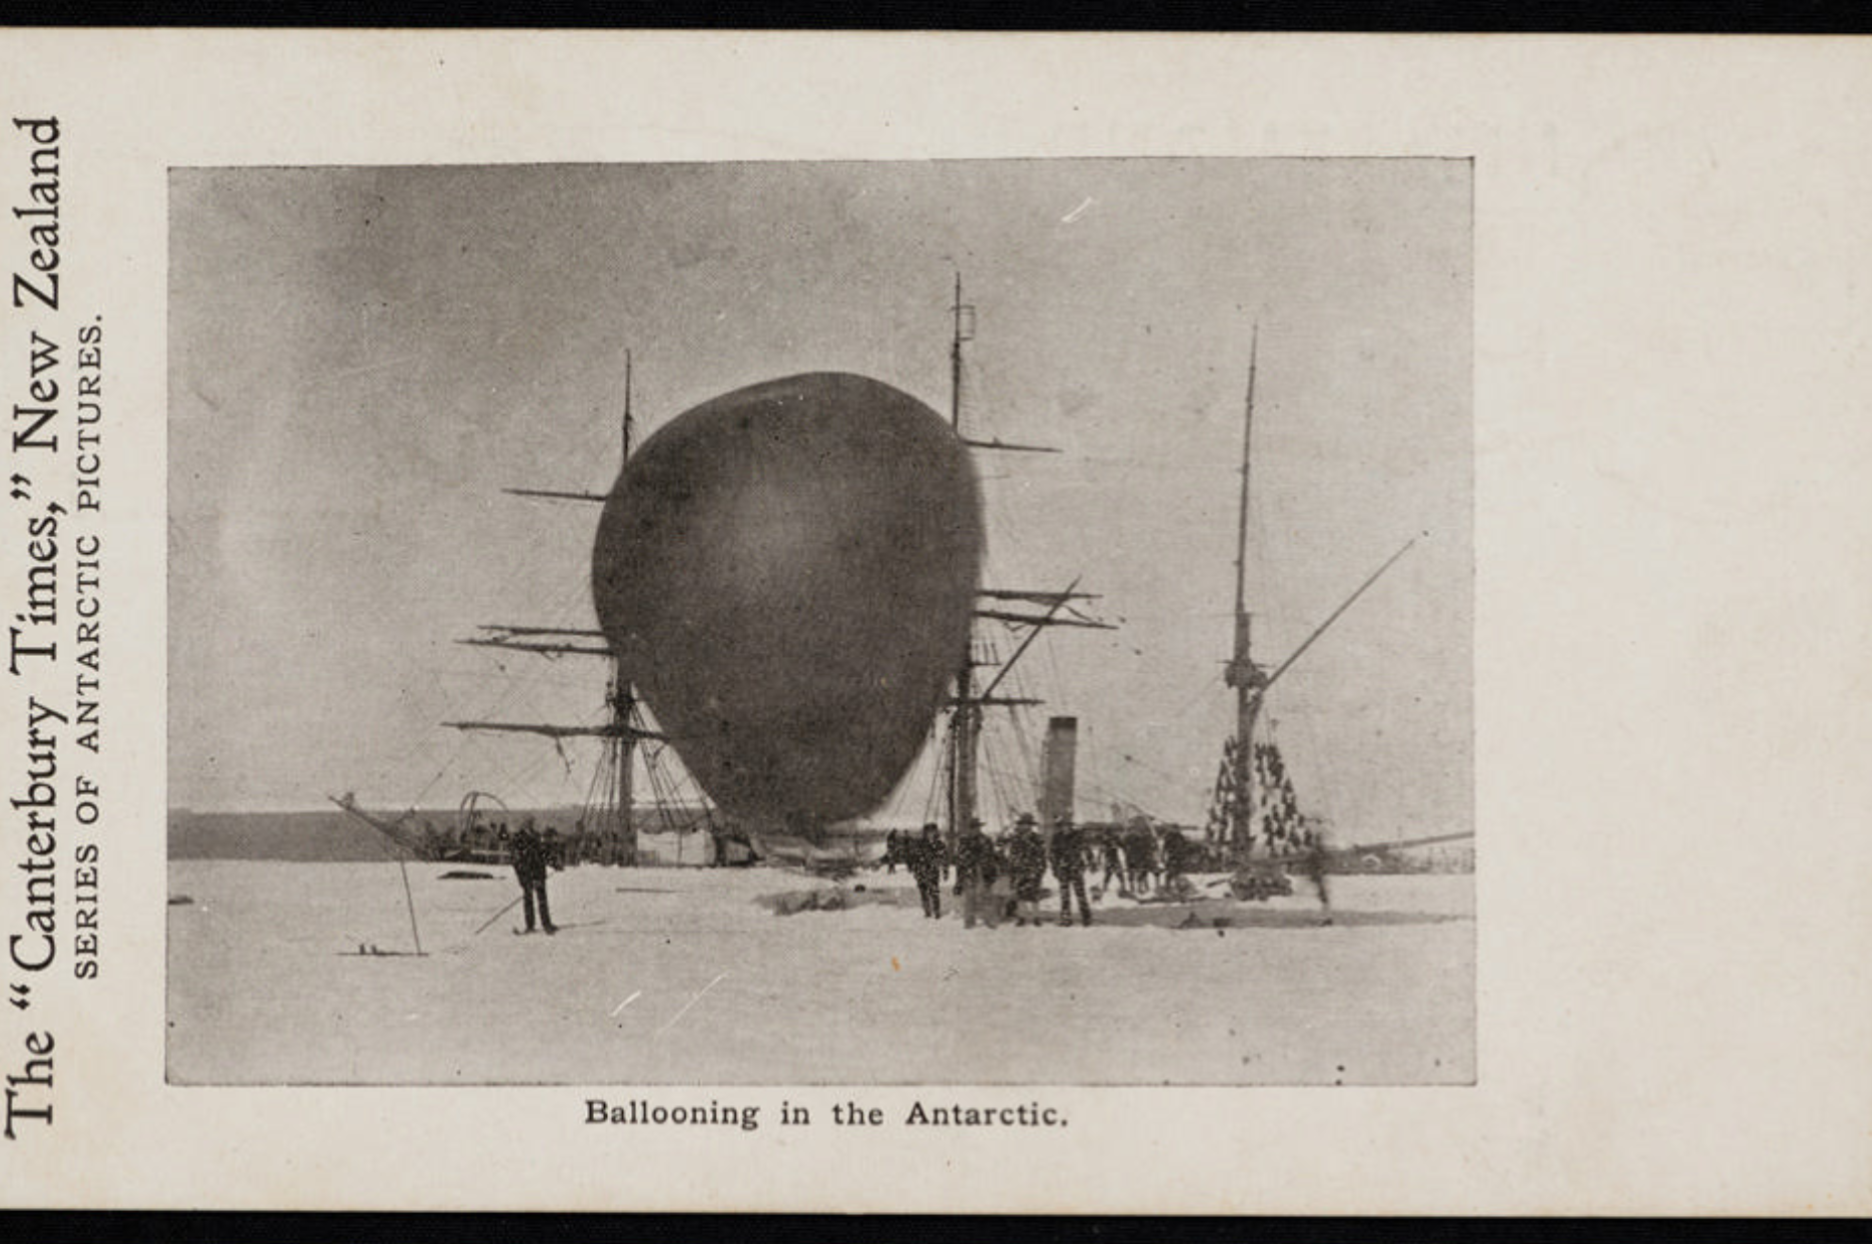 9949 1 Ballooning in the Antarctic during the 'Discovery Expedition' of 1901-04